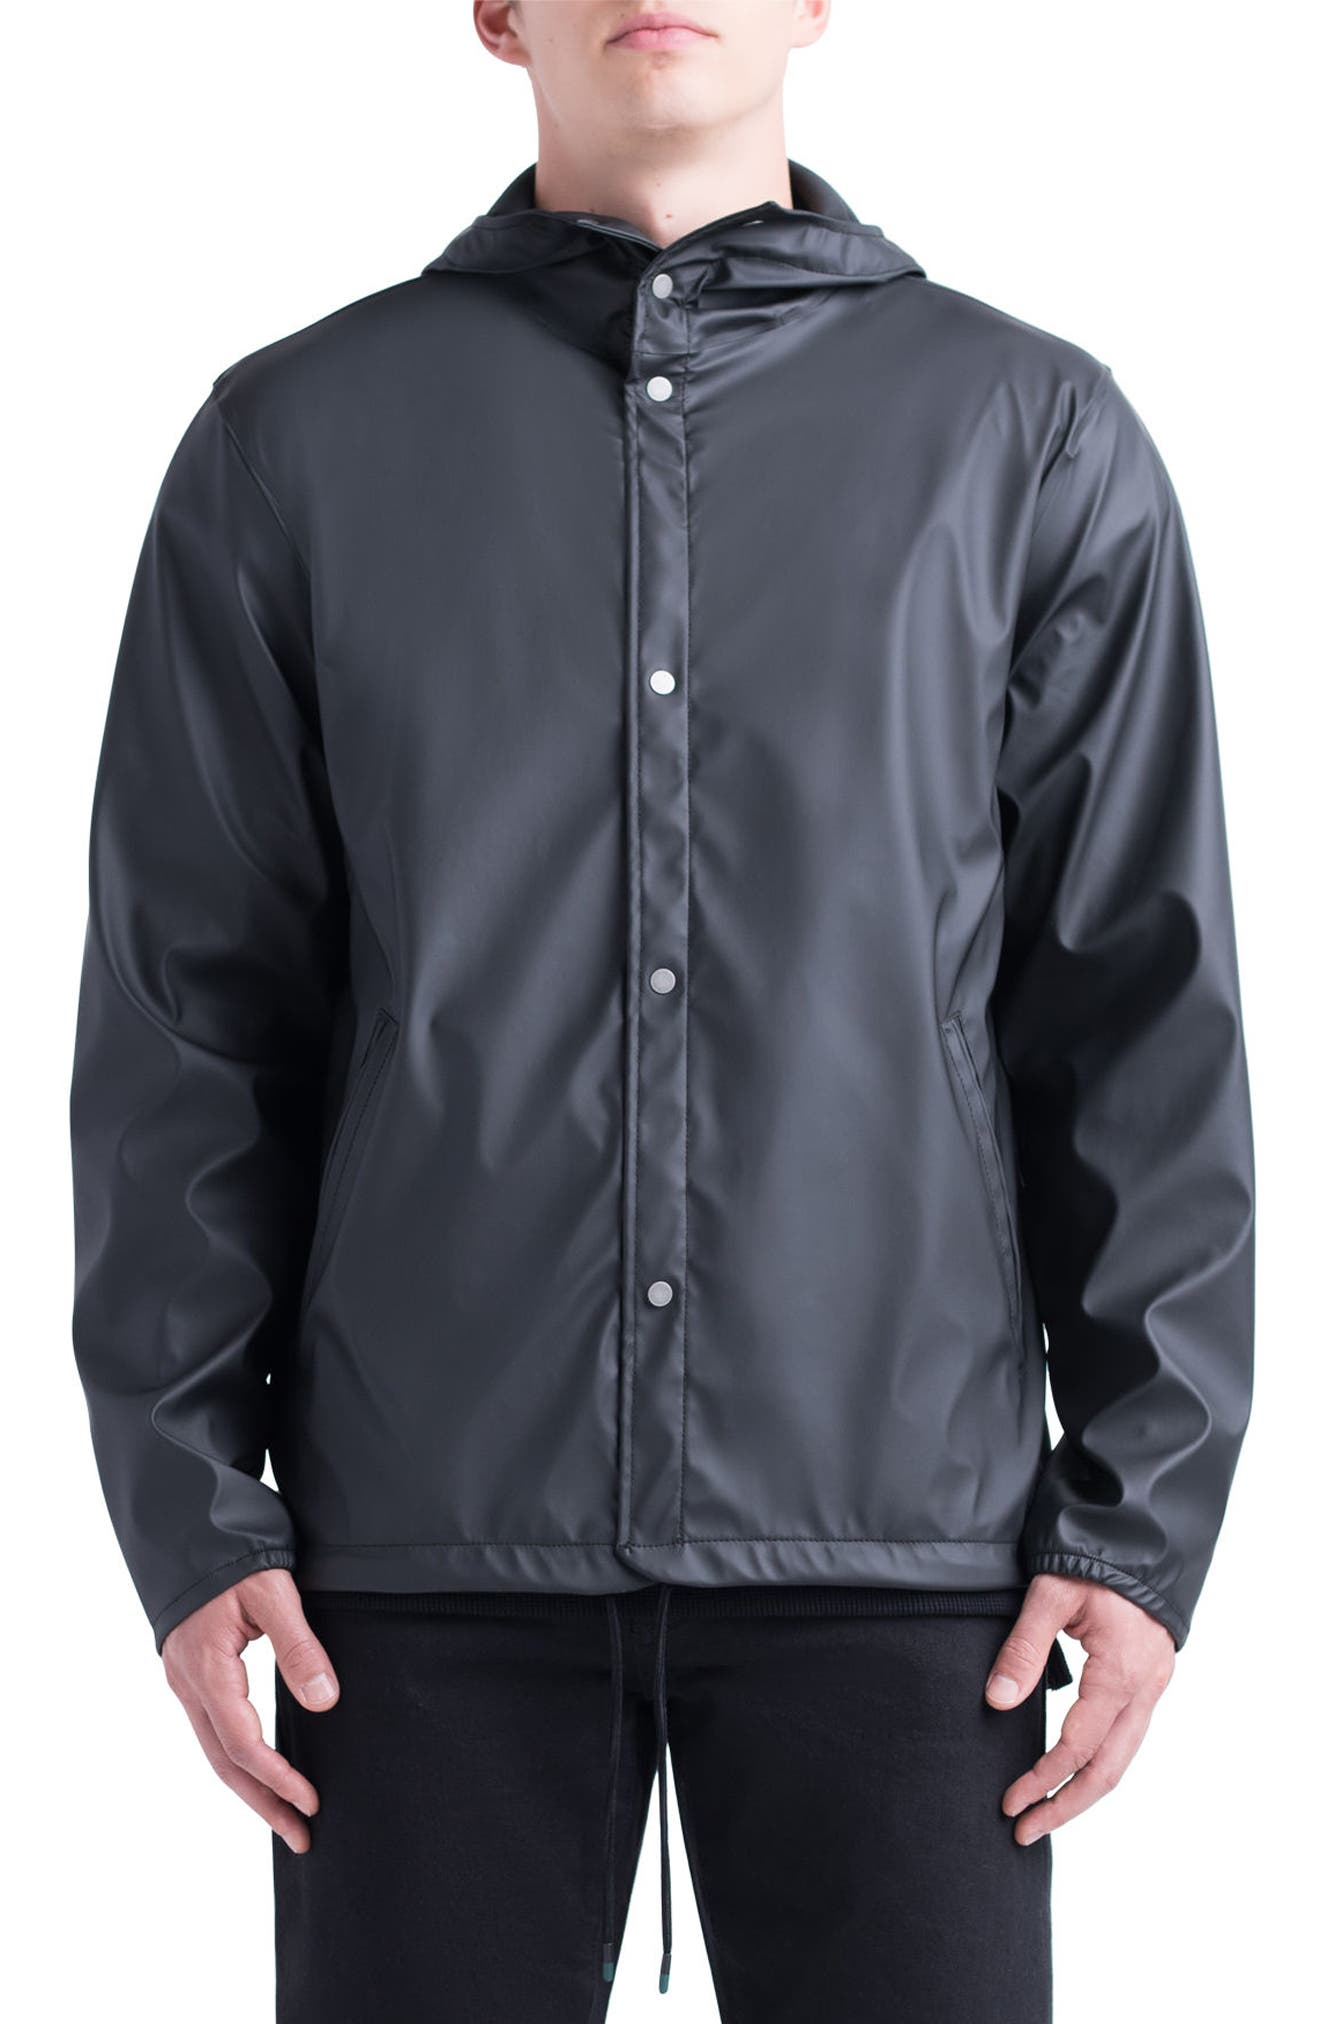 Forecast Hooded Coaches Jacket,                         Main,                         color,